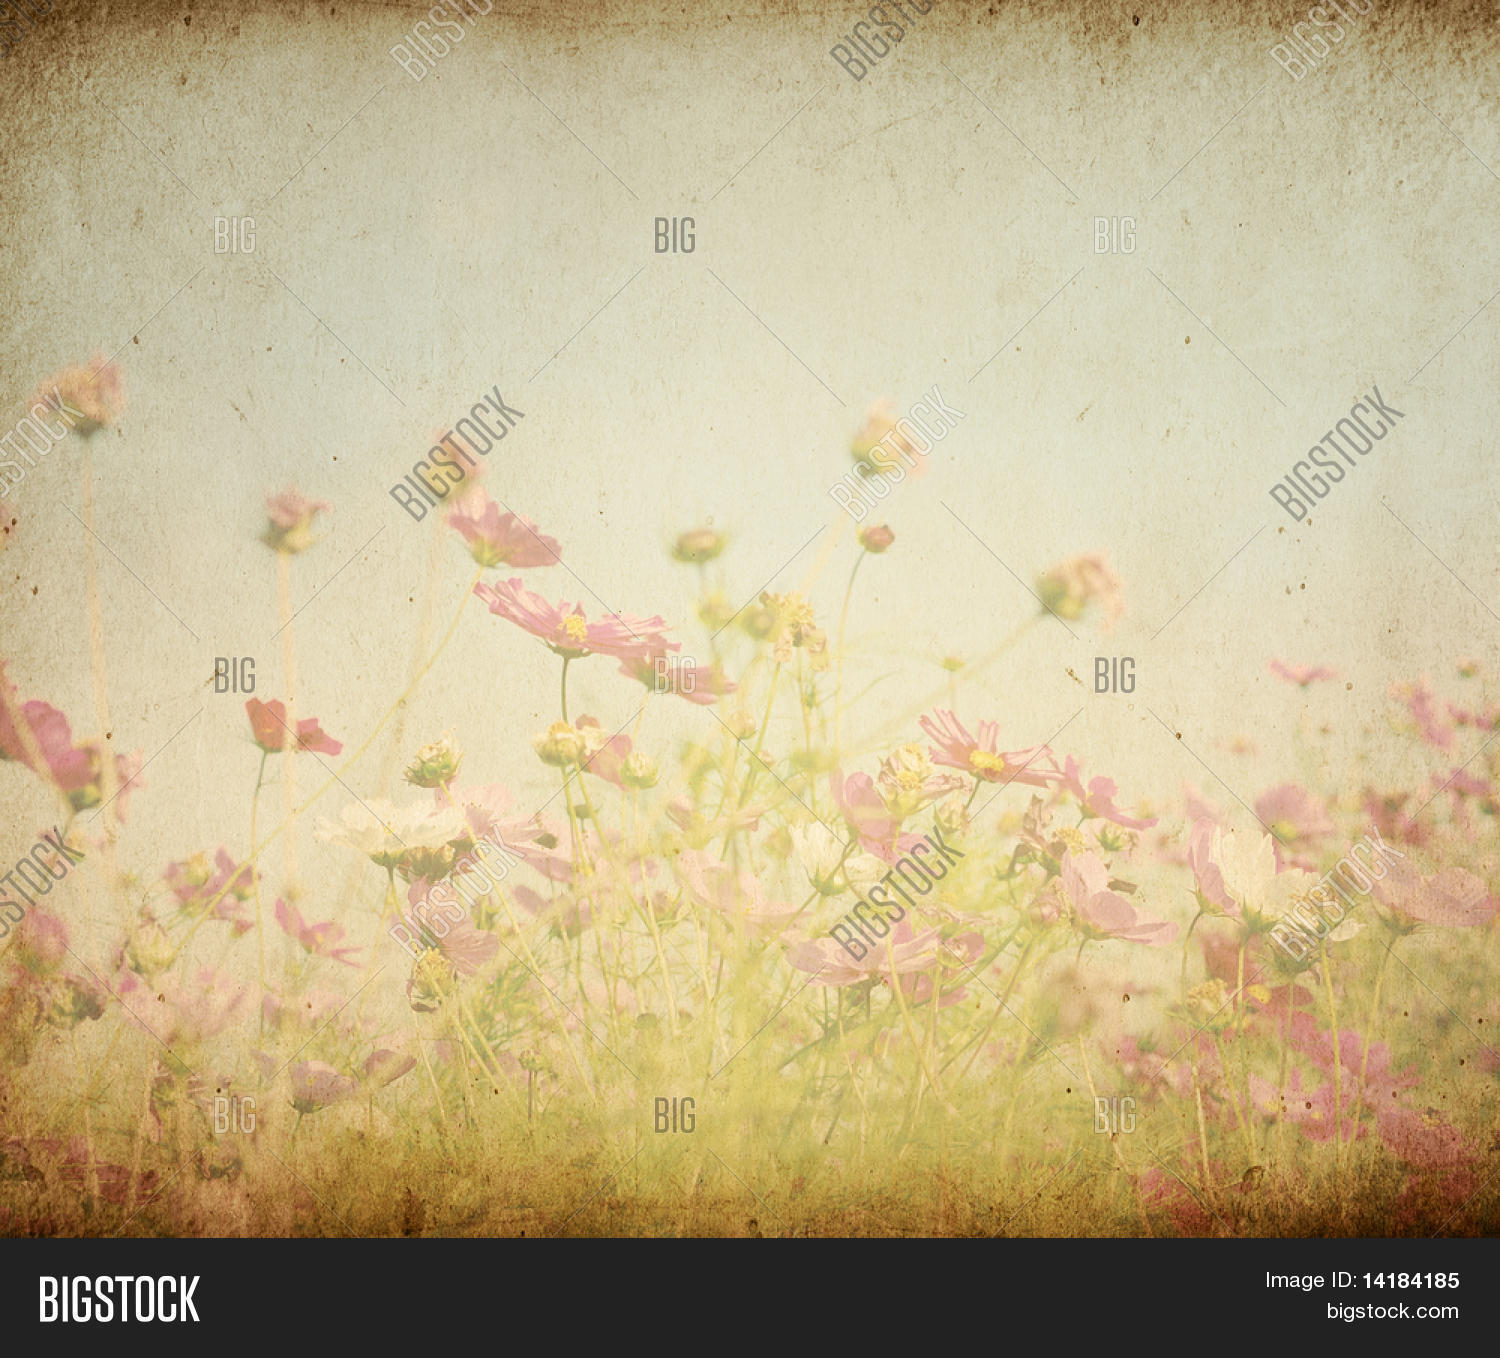 Vintage Flower Paper Image Photo Free Trial Bigstock